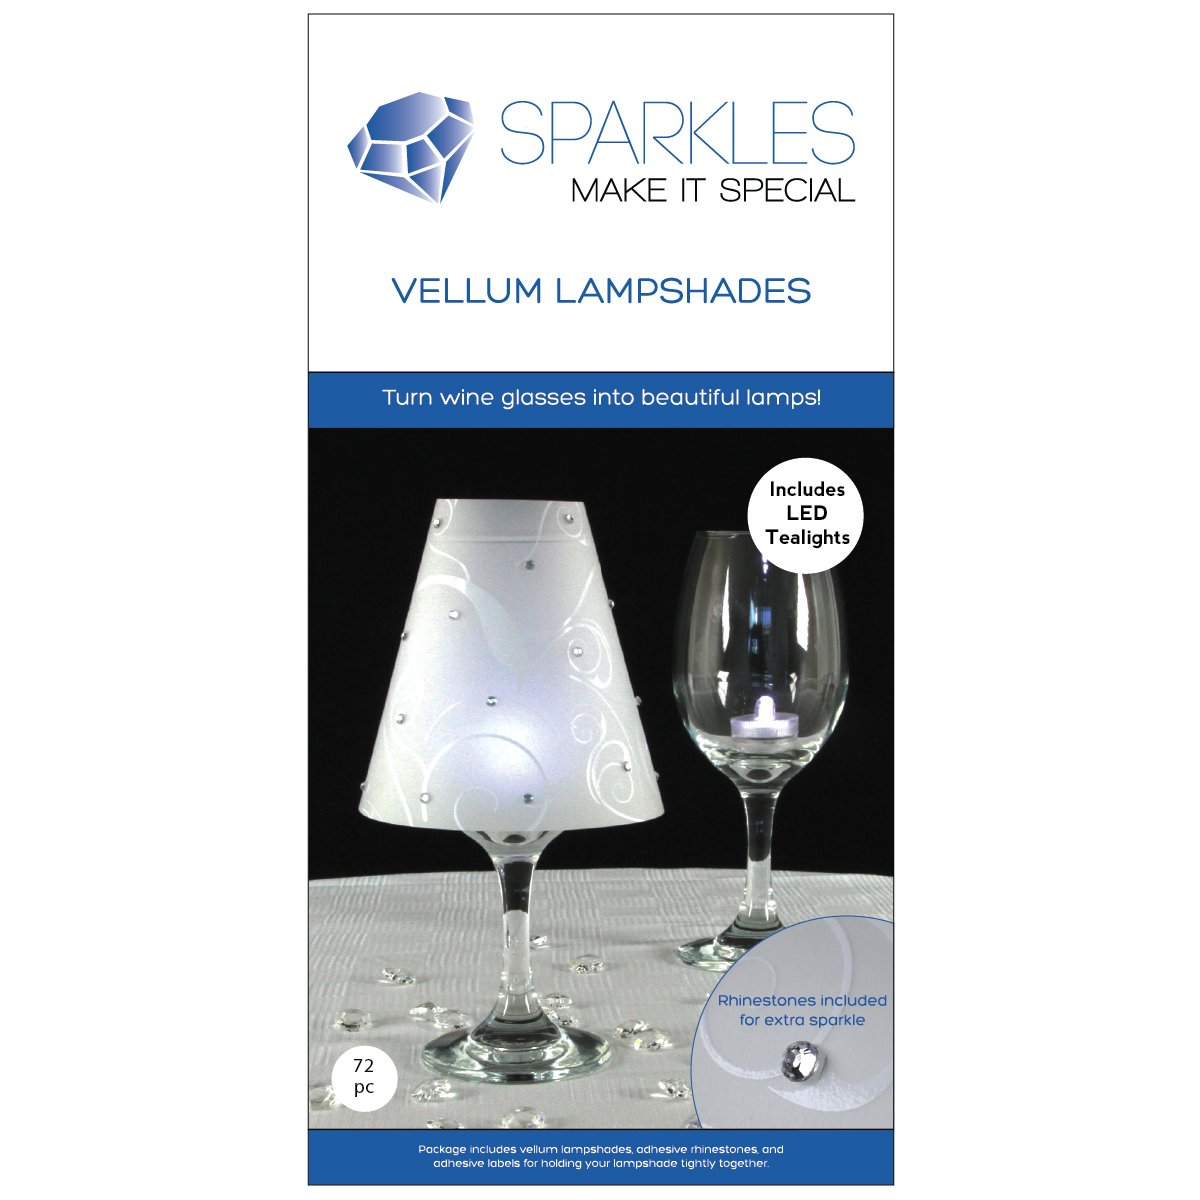 Sparkles Make It Special 72 pc Wine Glass Lamp Shades with Rhinestones and LED Tea Lights - Wedding Table Decoration - White Vellum Swirl Print